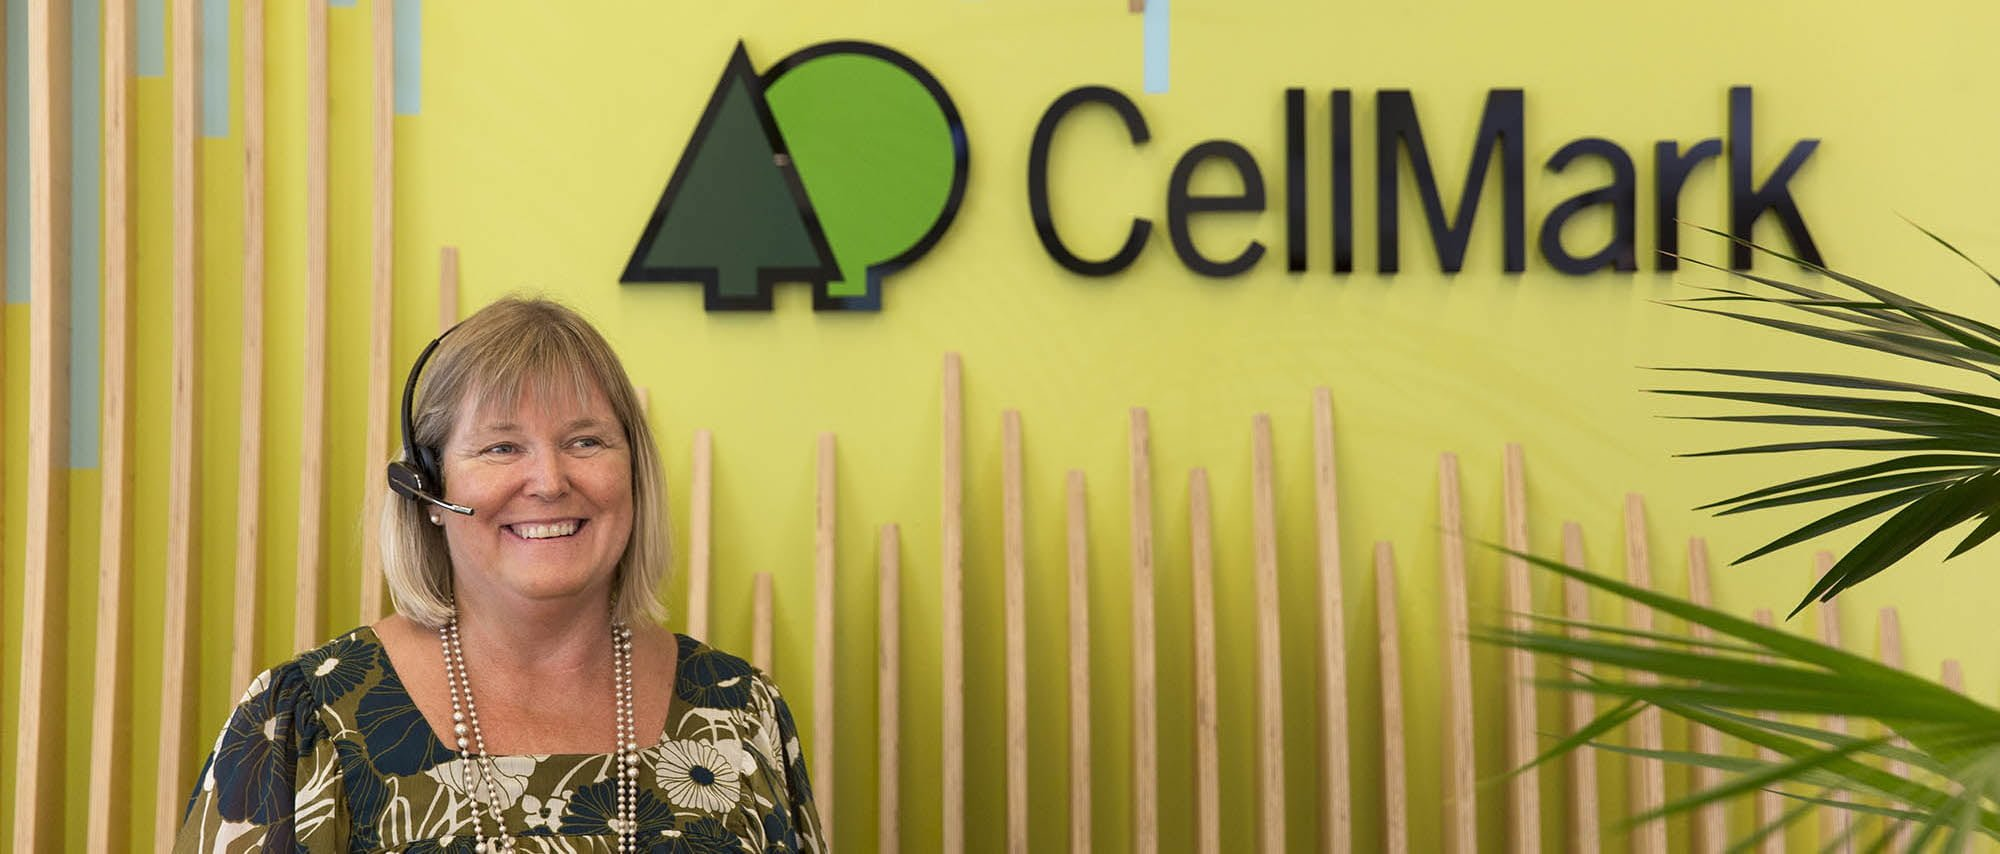 smiling receptionist woman in front of cellmark logo wall